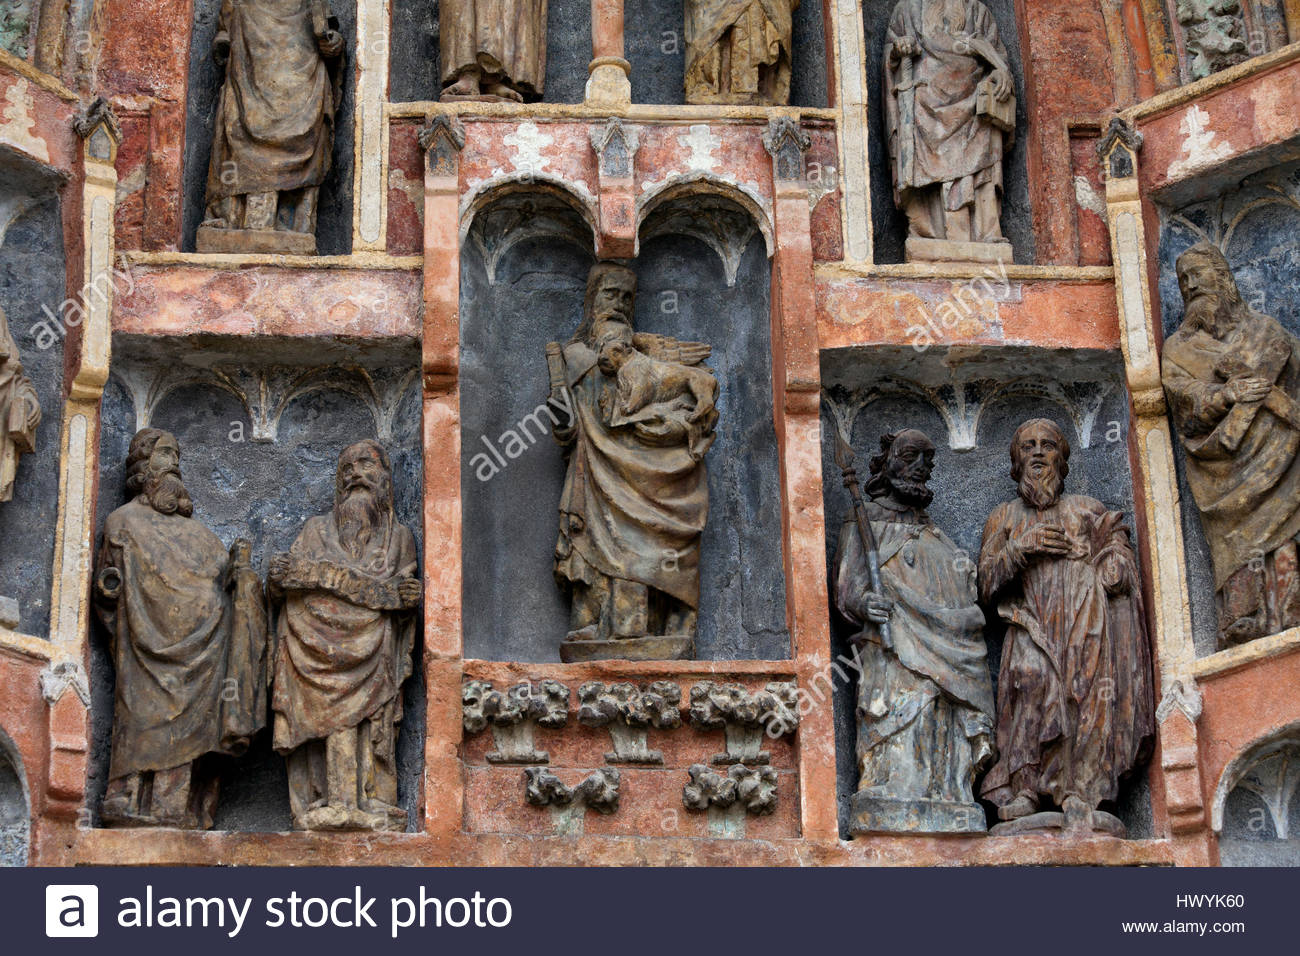 Religious sculptures stand in specific alcoves on a church facade. - Stock Image